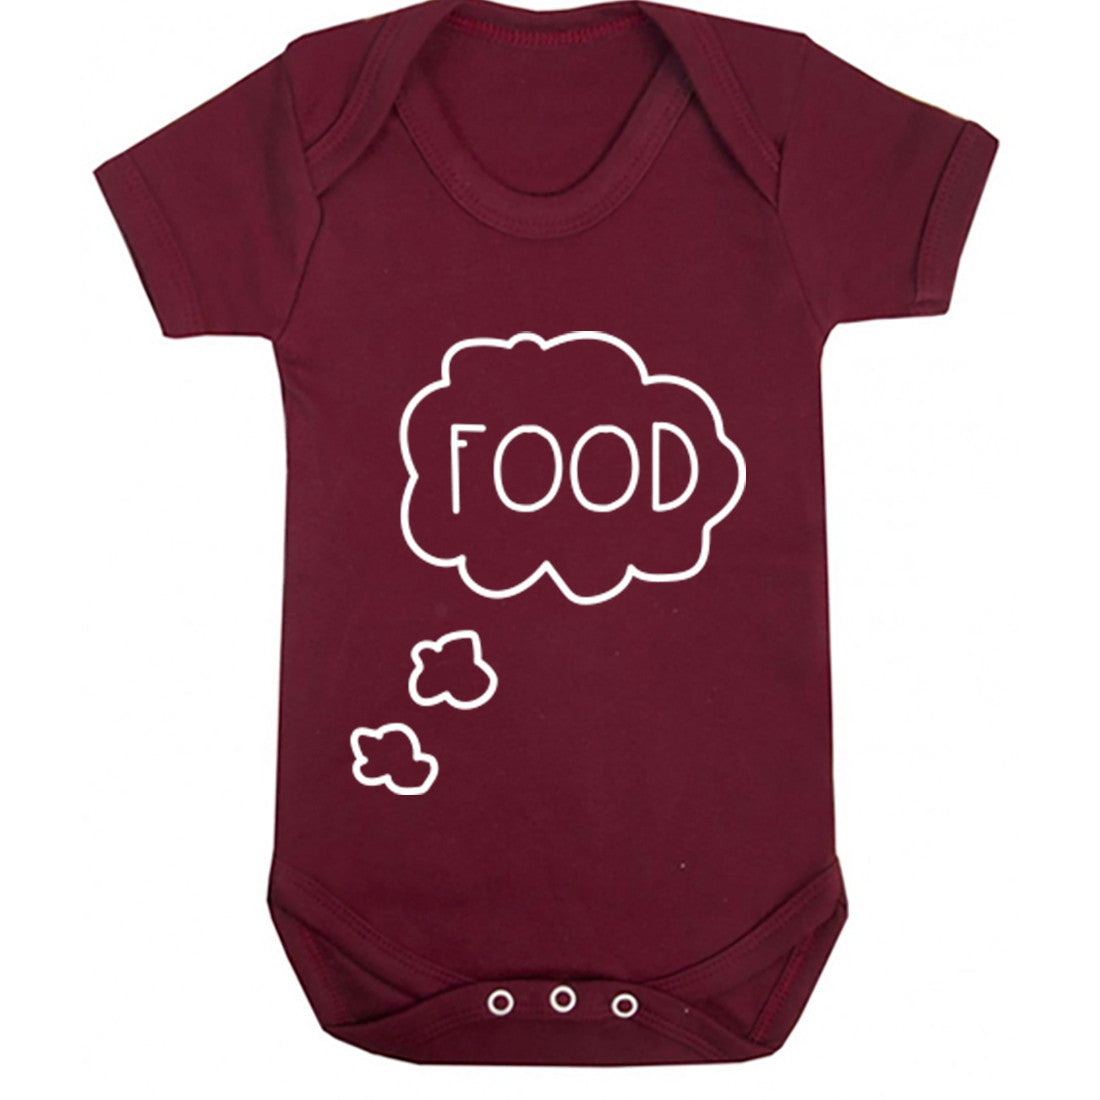 Thinking About Food Baby Vest K0364